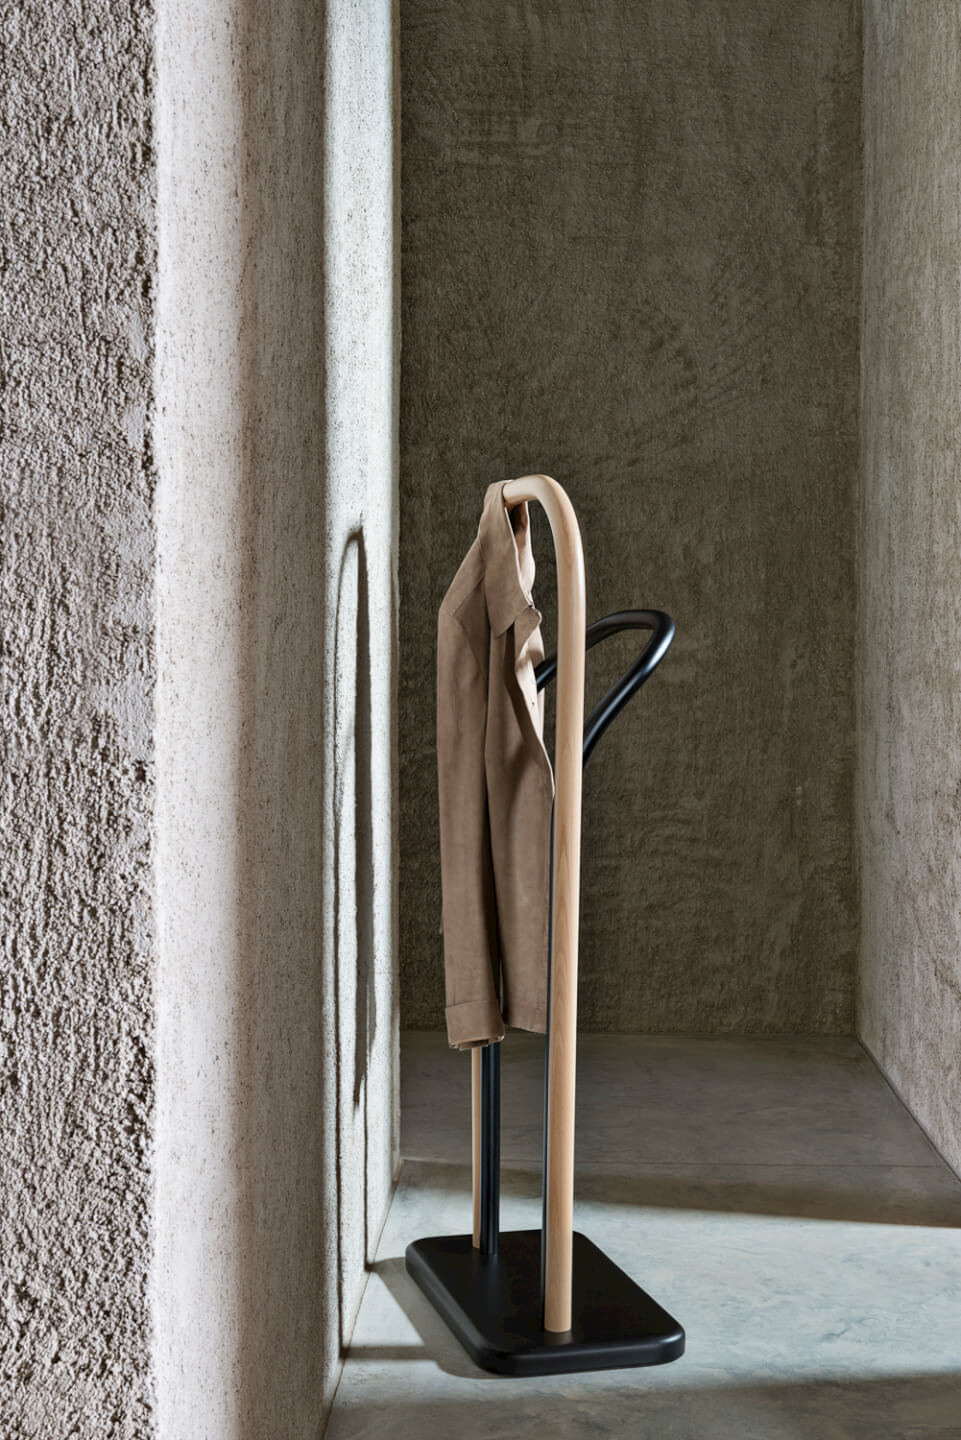 Arch Clothes Valet - The Arch Clothes Valet enriches the furnishing proposal that Front, the Swedish designer duo, created for Wiener GTV Design in 2014. An element that embodies the brand's signature style in its linear simplicity, updated with an unexpected twist thanks to the two-toned wood. Ironic yet discreet, the Arch Clothes Valet adapts easily into the personal area of any home, like the bedroom or bathroom. | Matter of Stuff